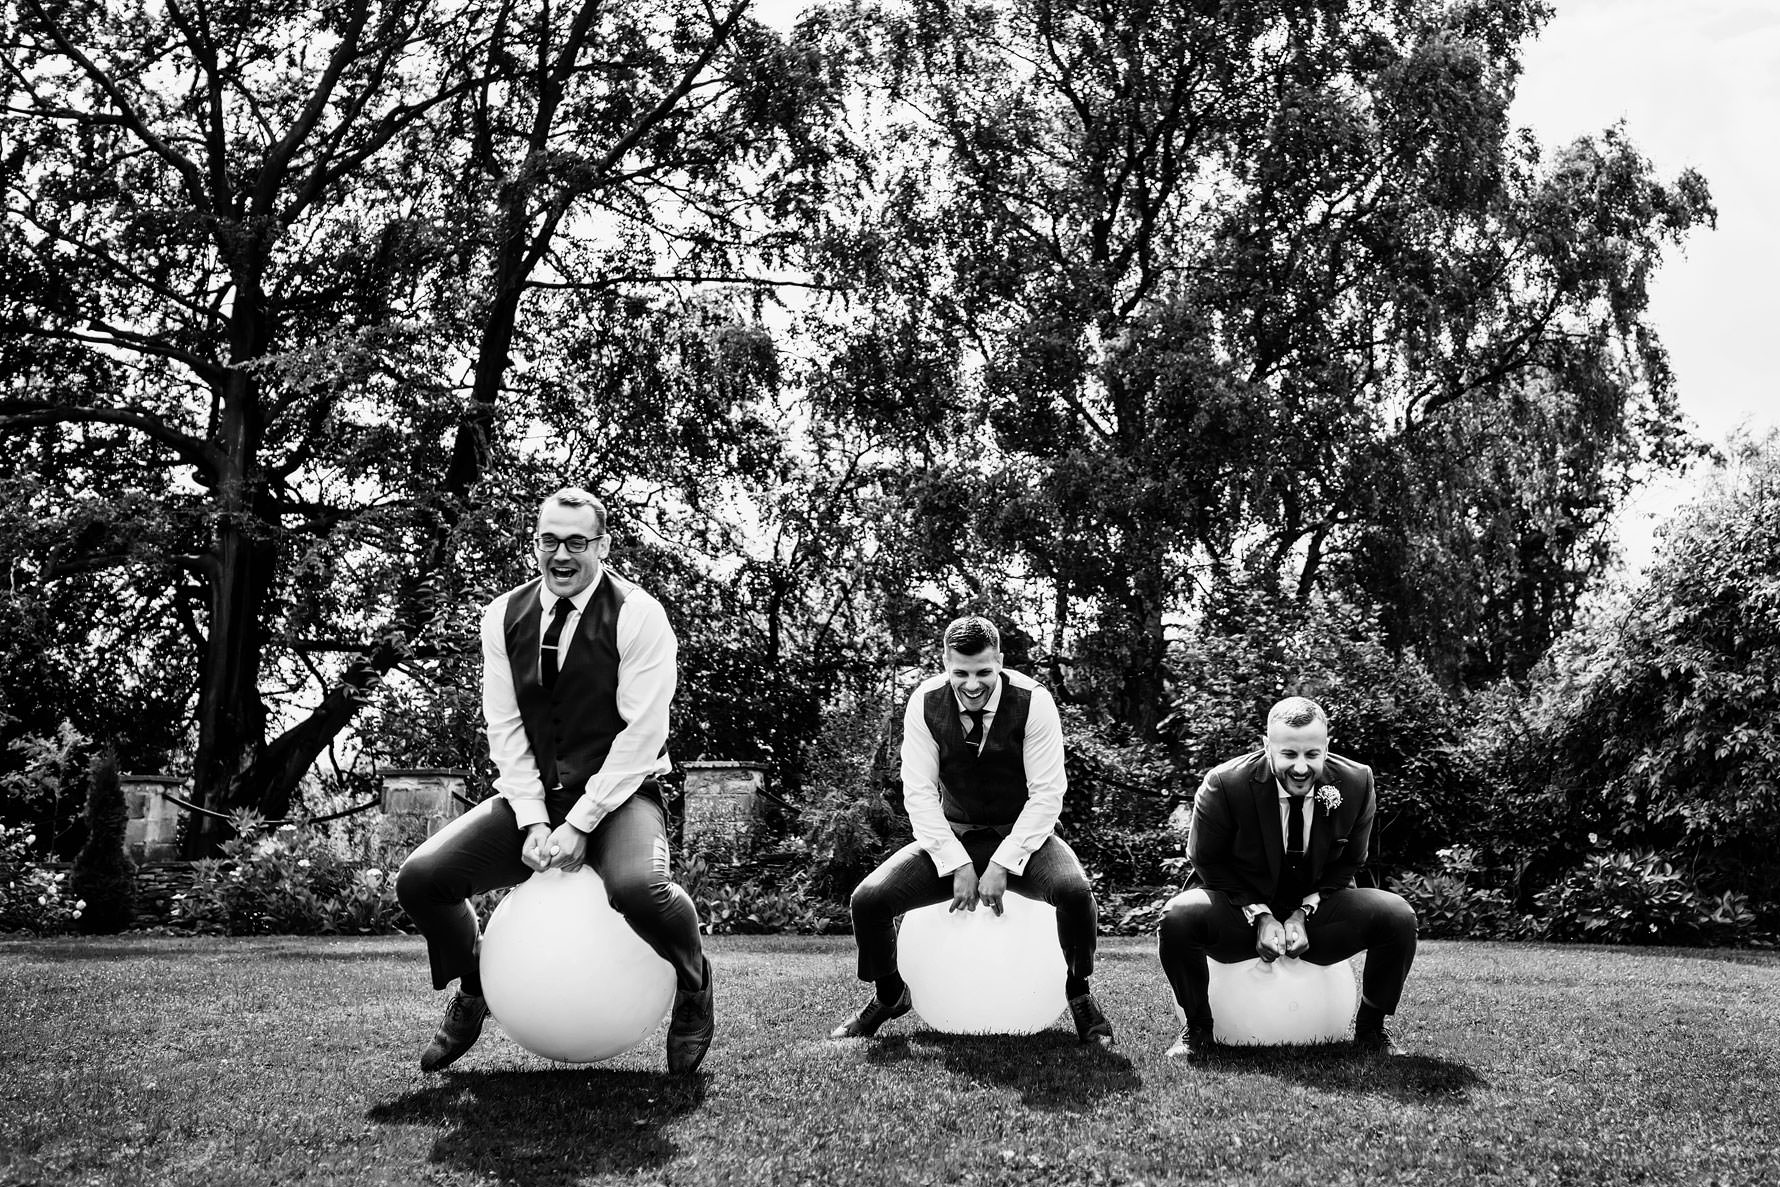 space hoppers at a wedding